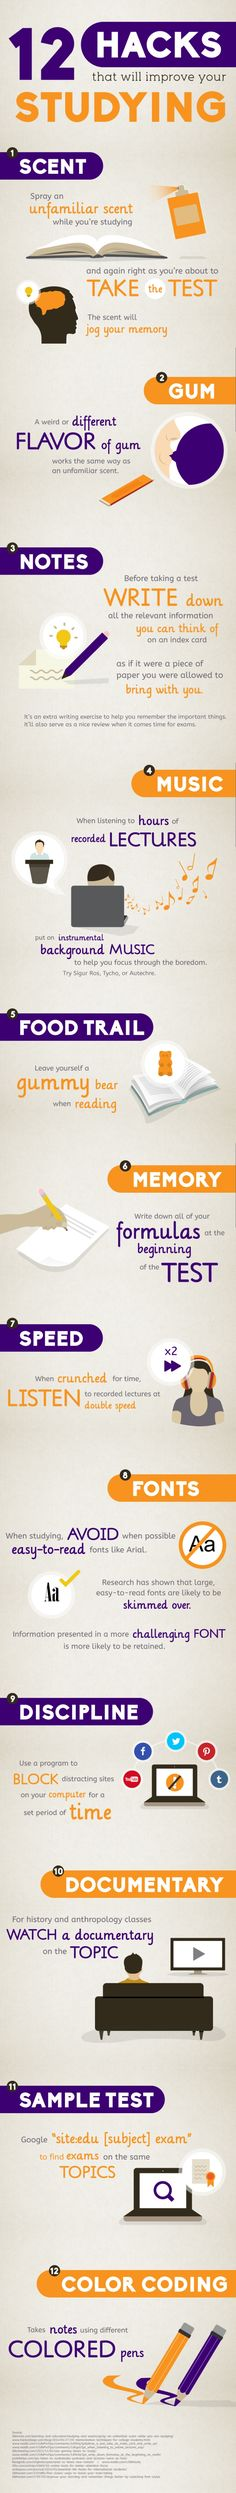 #MayFavorite: 12 Hacks That Will Improve Your Studying